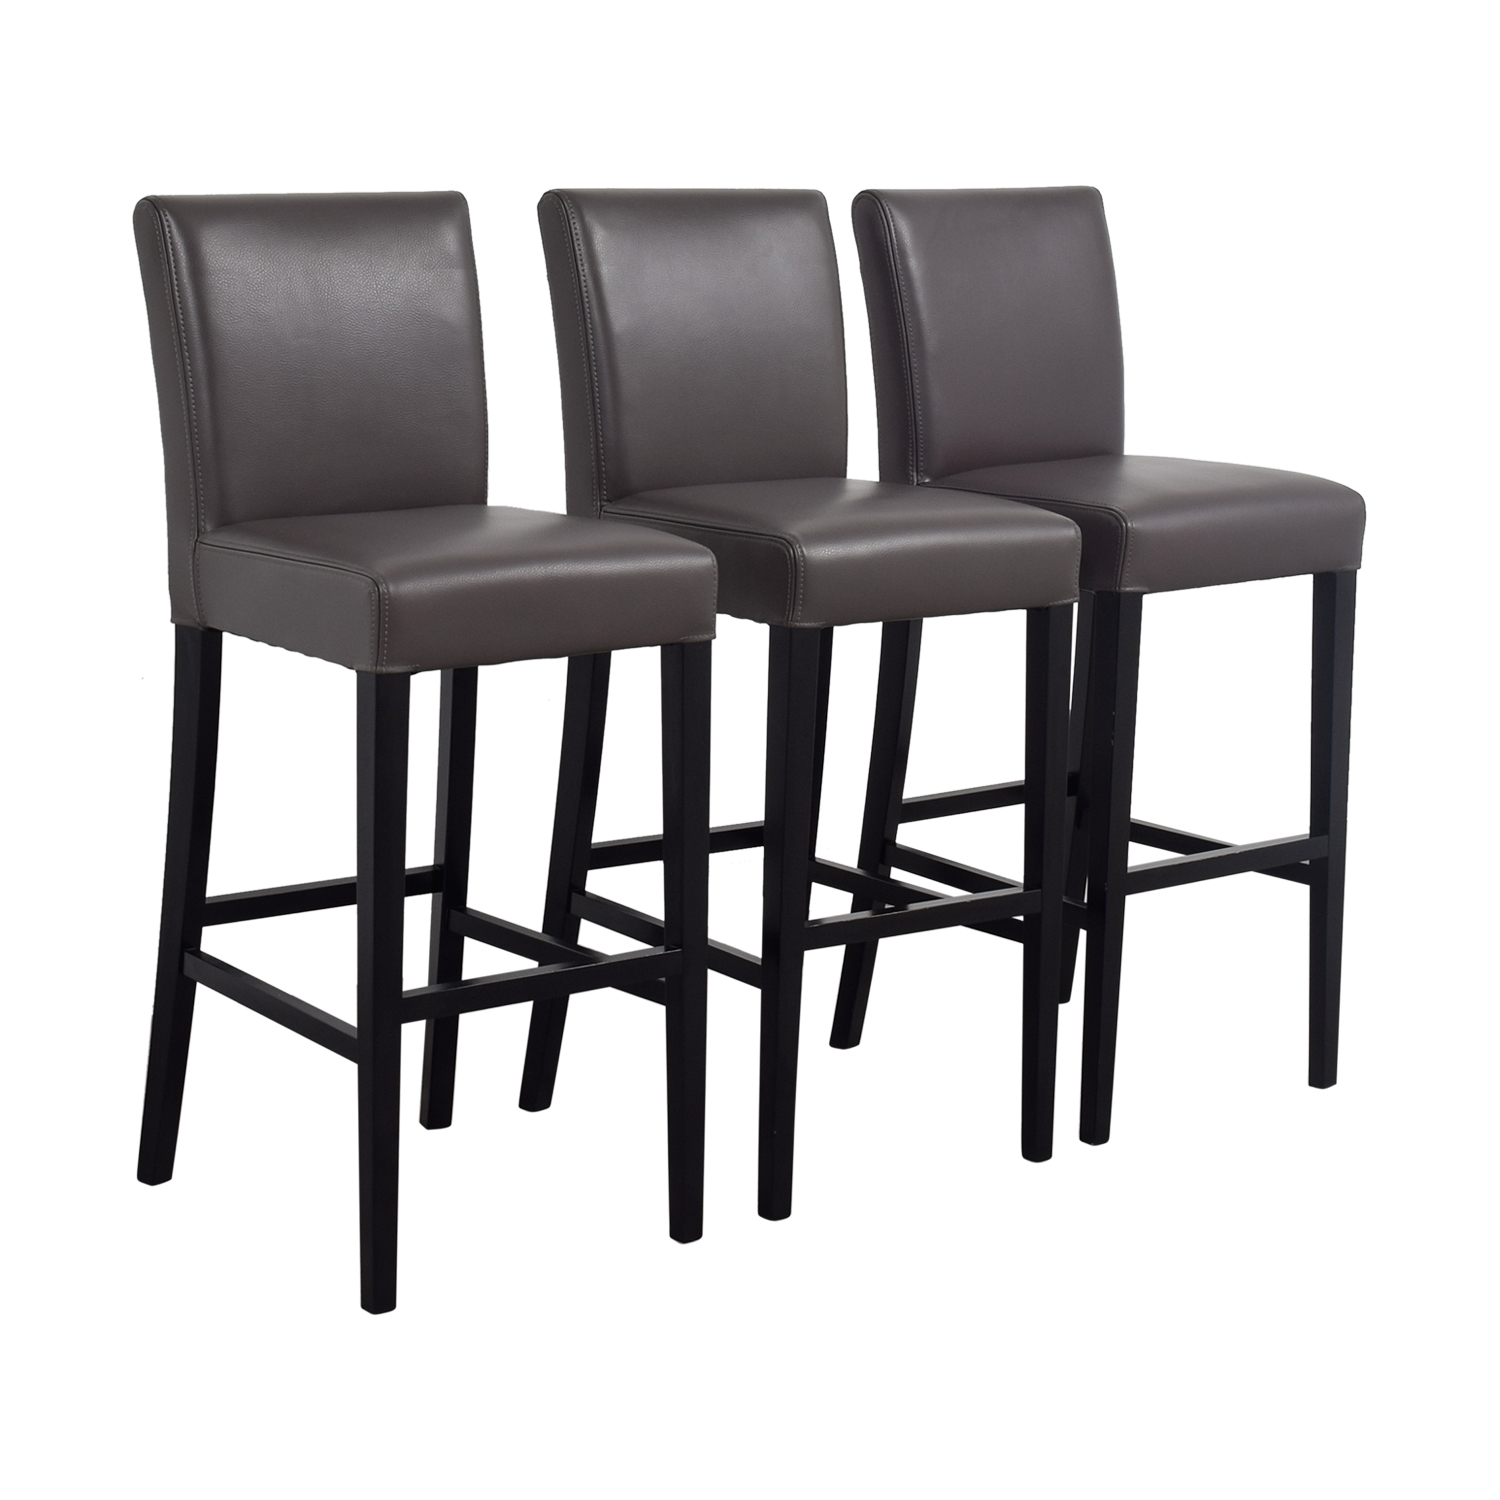 Admirable 89 Off Crate Barrel Crate Barrel Lowe Smoke Leather Bar Stools Chairs Inzonedesignstudio Interior Chair Design Inzonedesignstudiocom